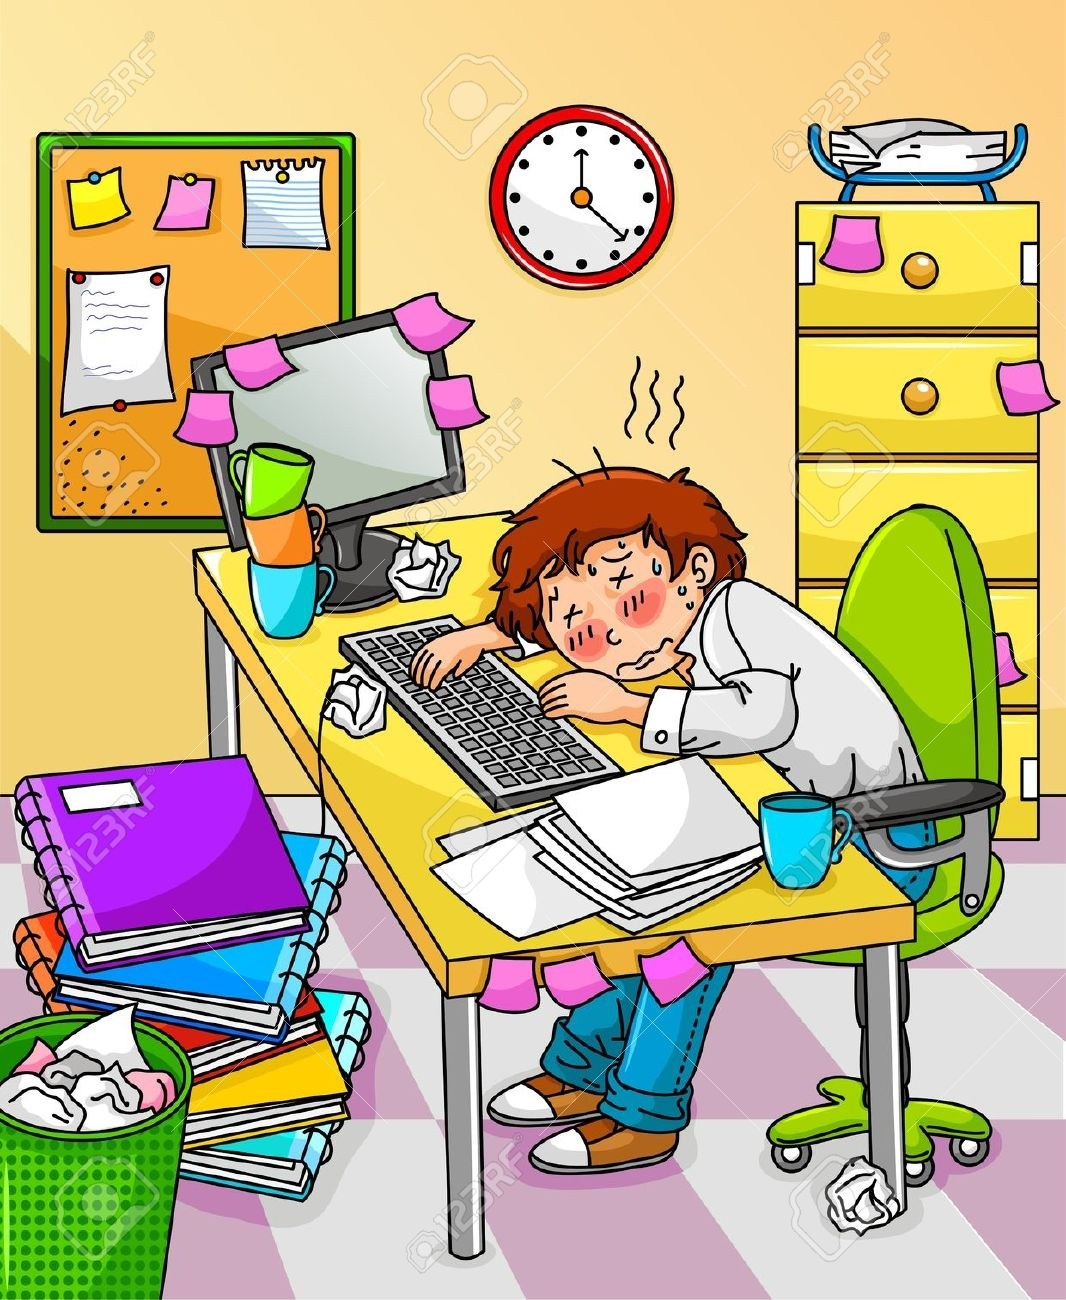 Stressed student clipart 5 » Clipart Portal.